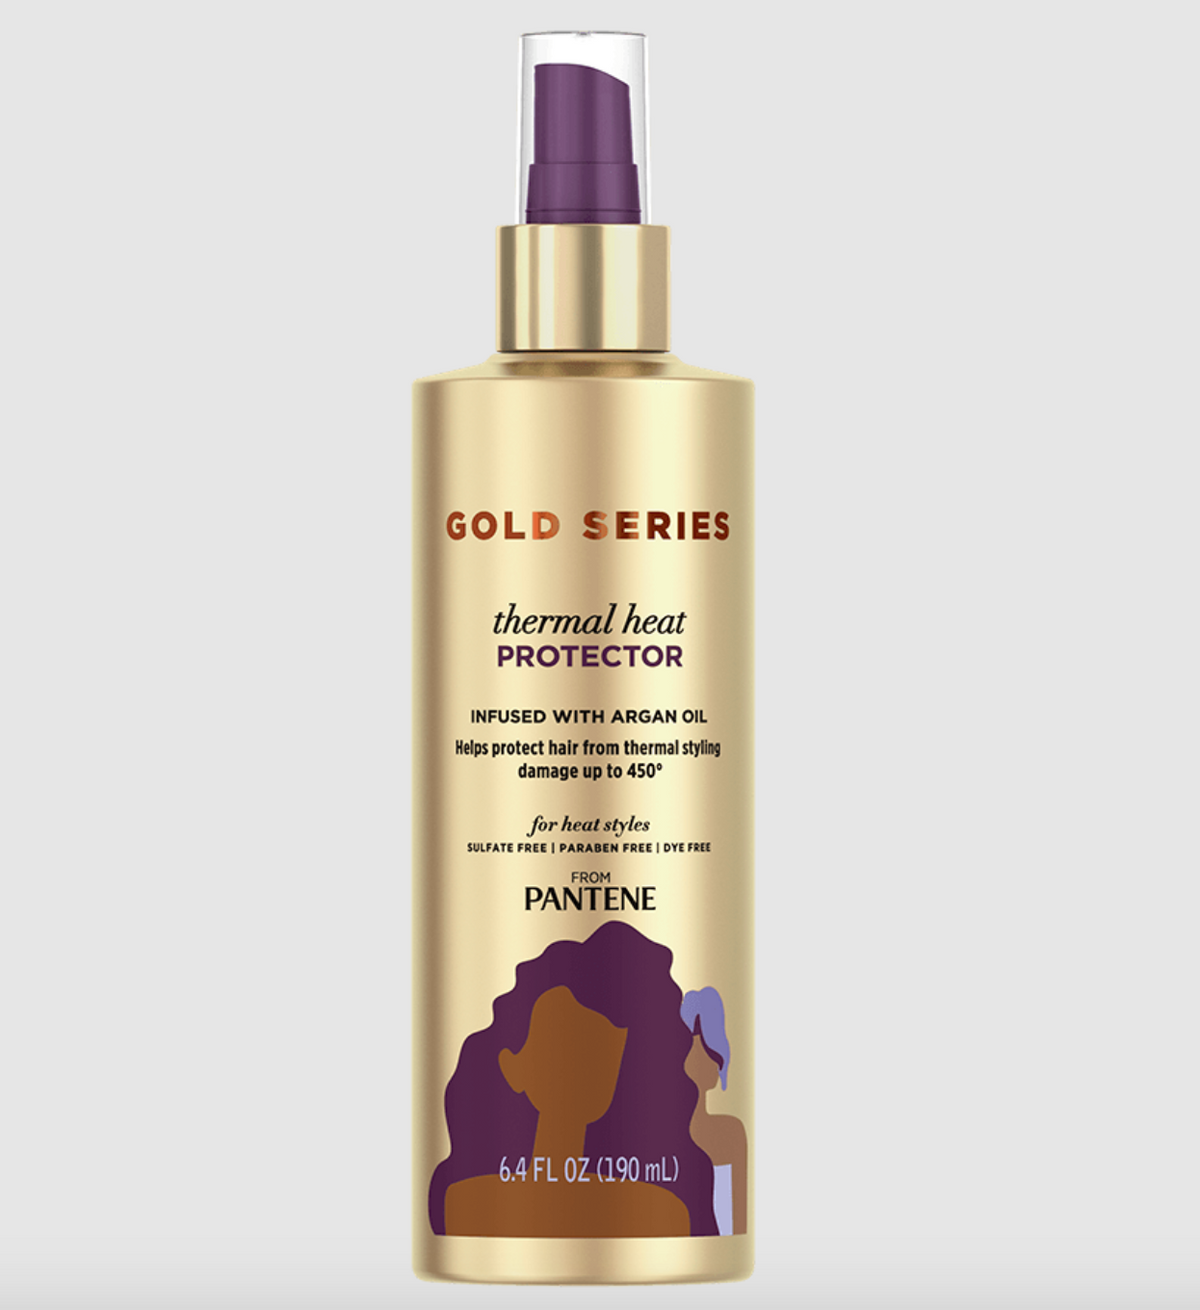 Gold Series Thermal Heat Protector